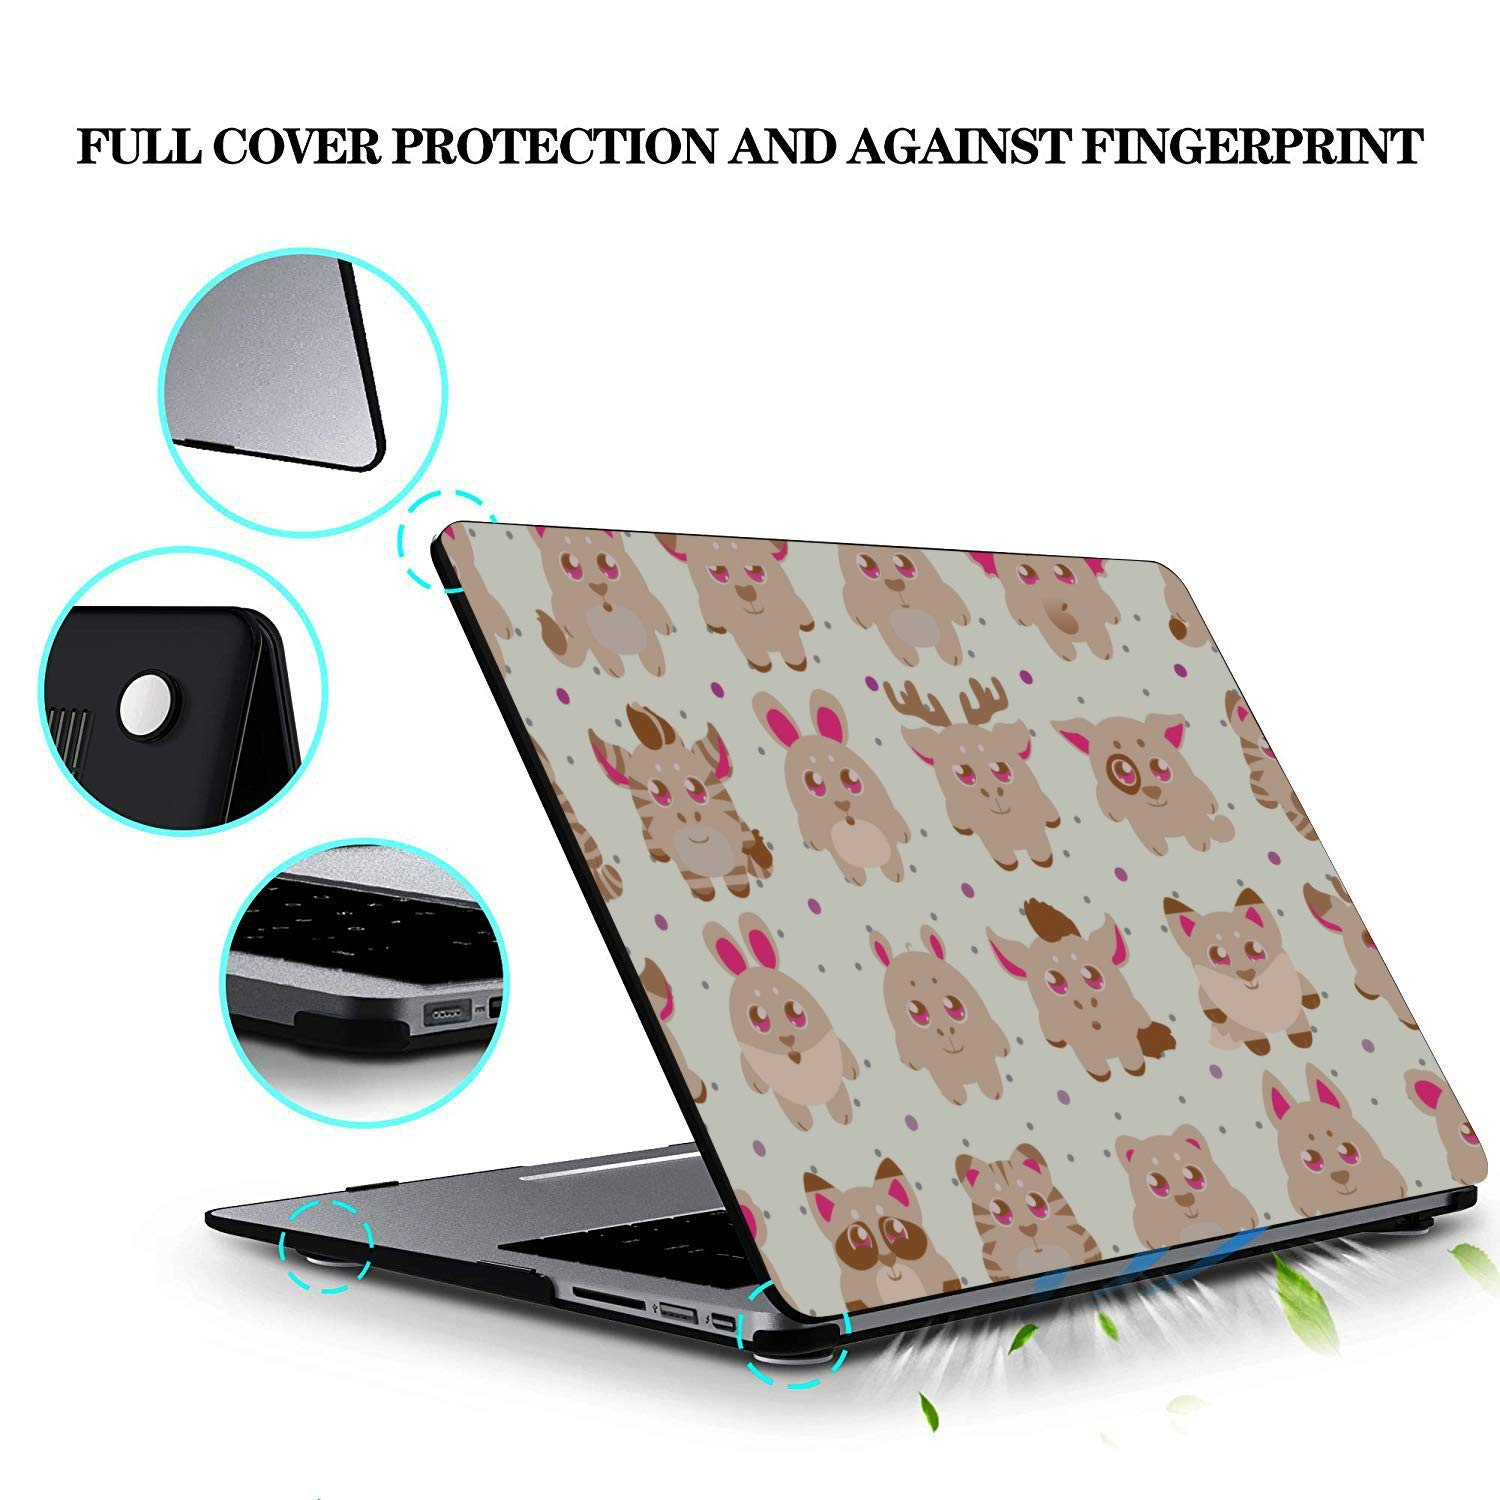 Laptop Cover Spring Cartoon Skunk Flowers Leaf Plastic Hard Shell Compatible Mac Air 11 Pro 13 15 Cover MacBook Air Protection for MacBook 2016-2019 Version